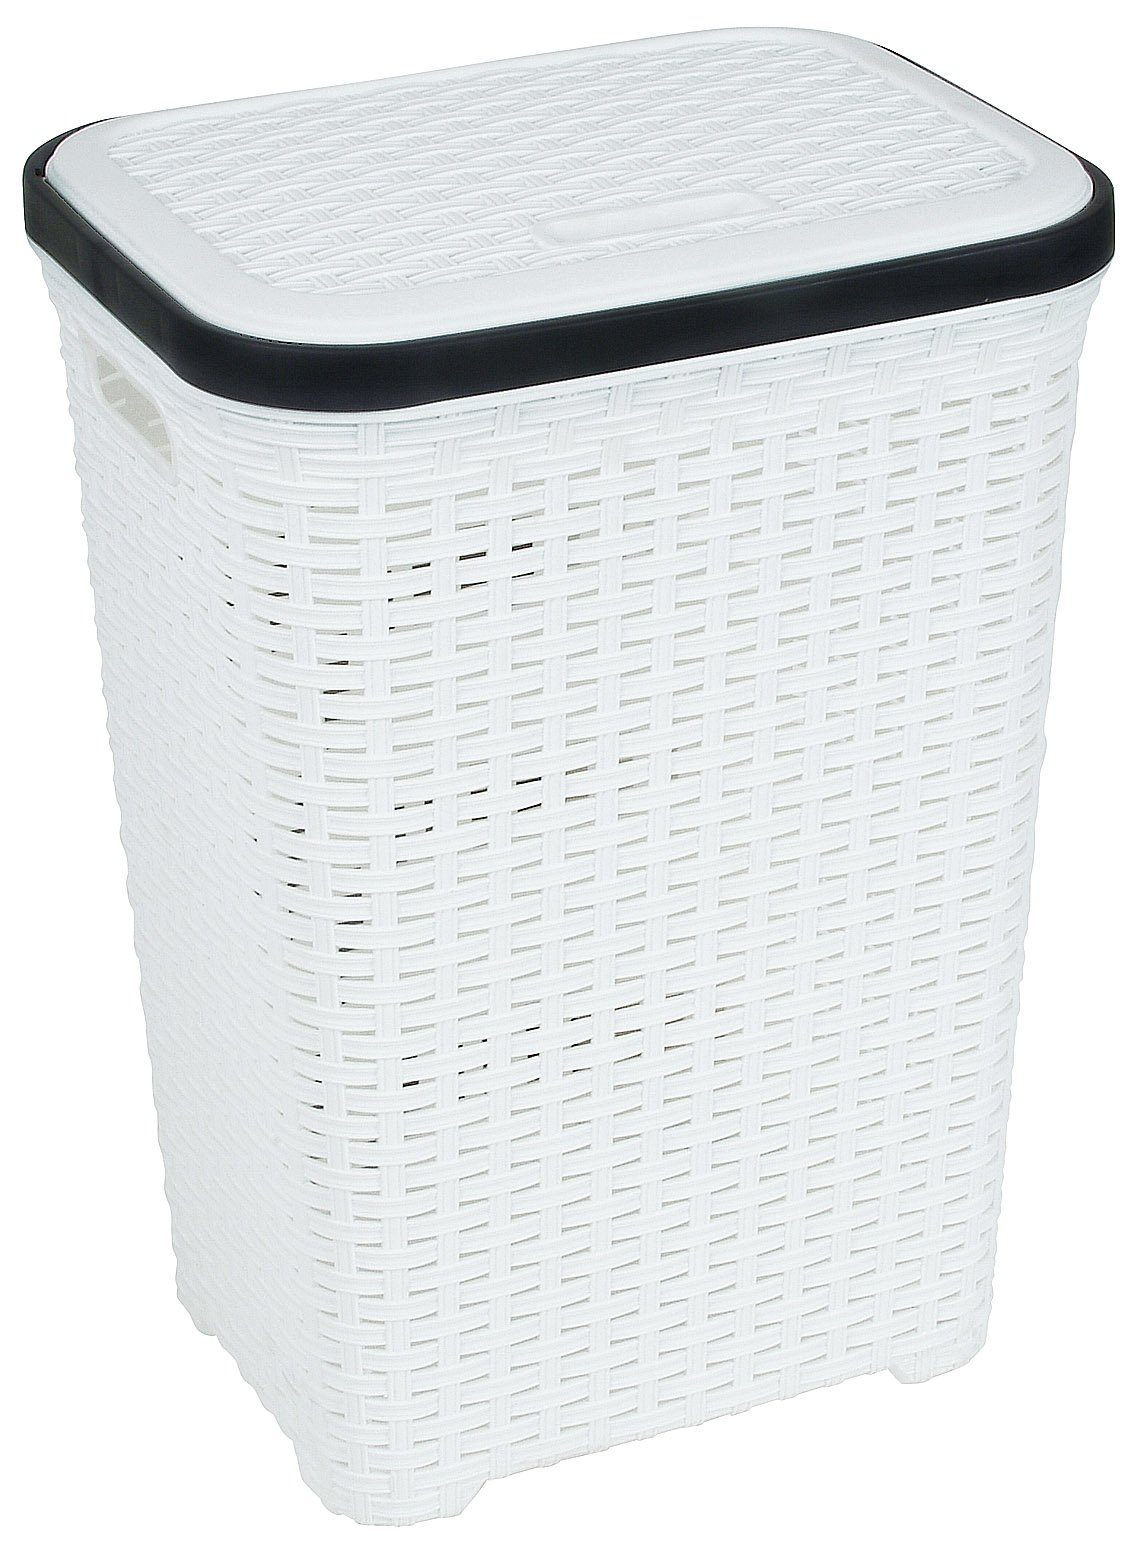 Black Wicker Hamper Rattan Wicker Style 1 7 Bushel Laundry Hamper White